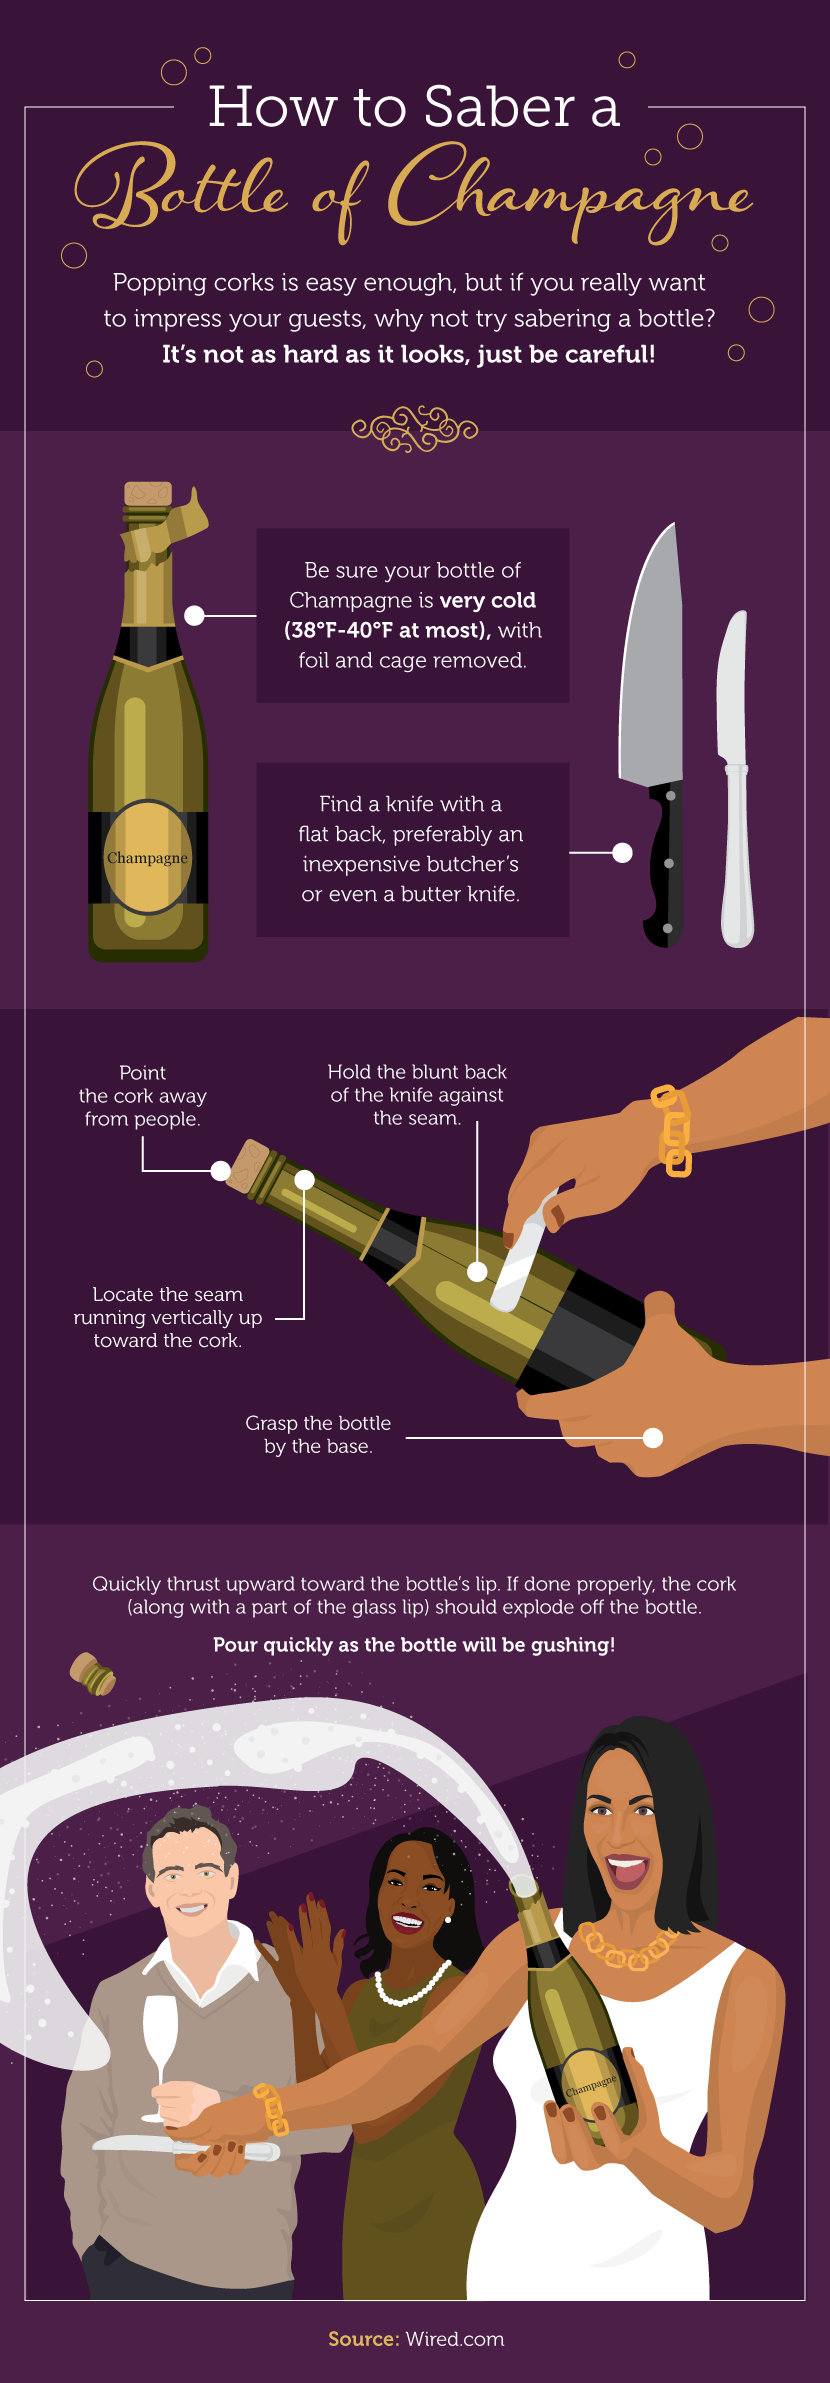 How to Saber a Bottle of Champagne - Everything You Need To Know About Drinking Champagne